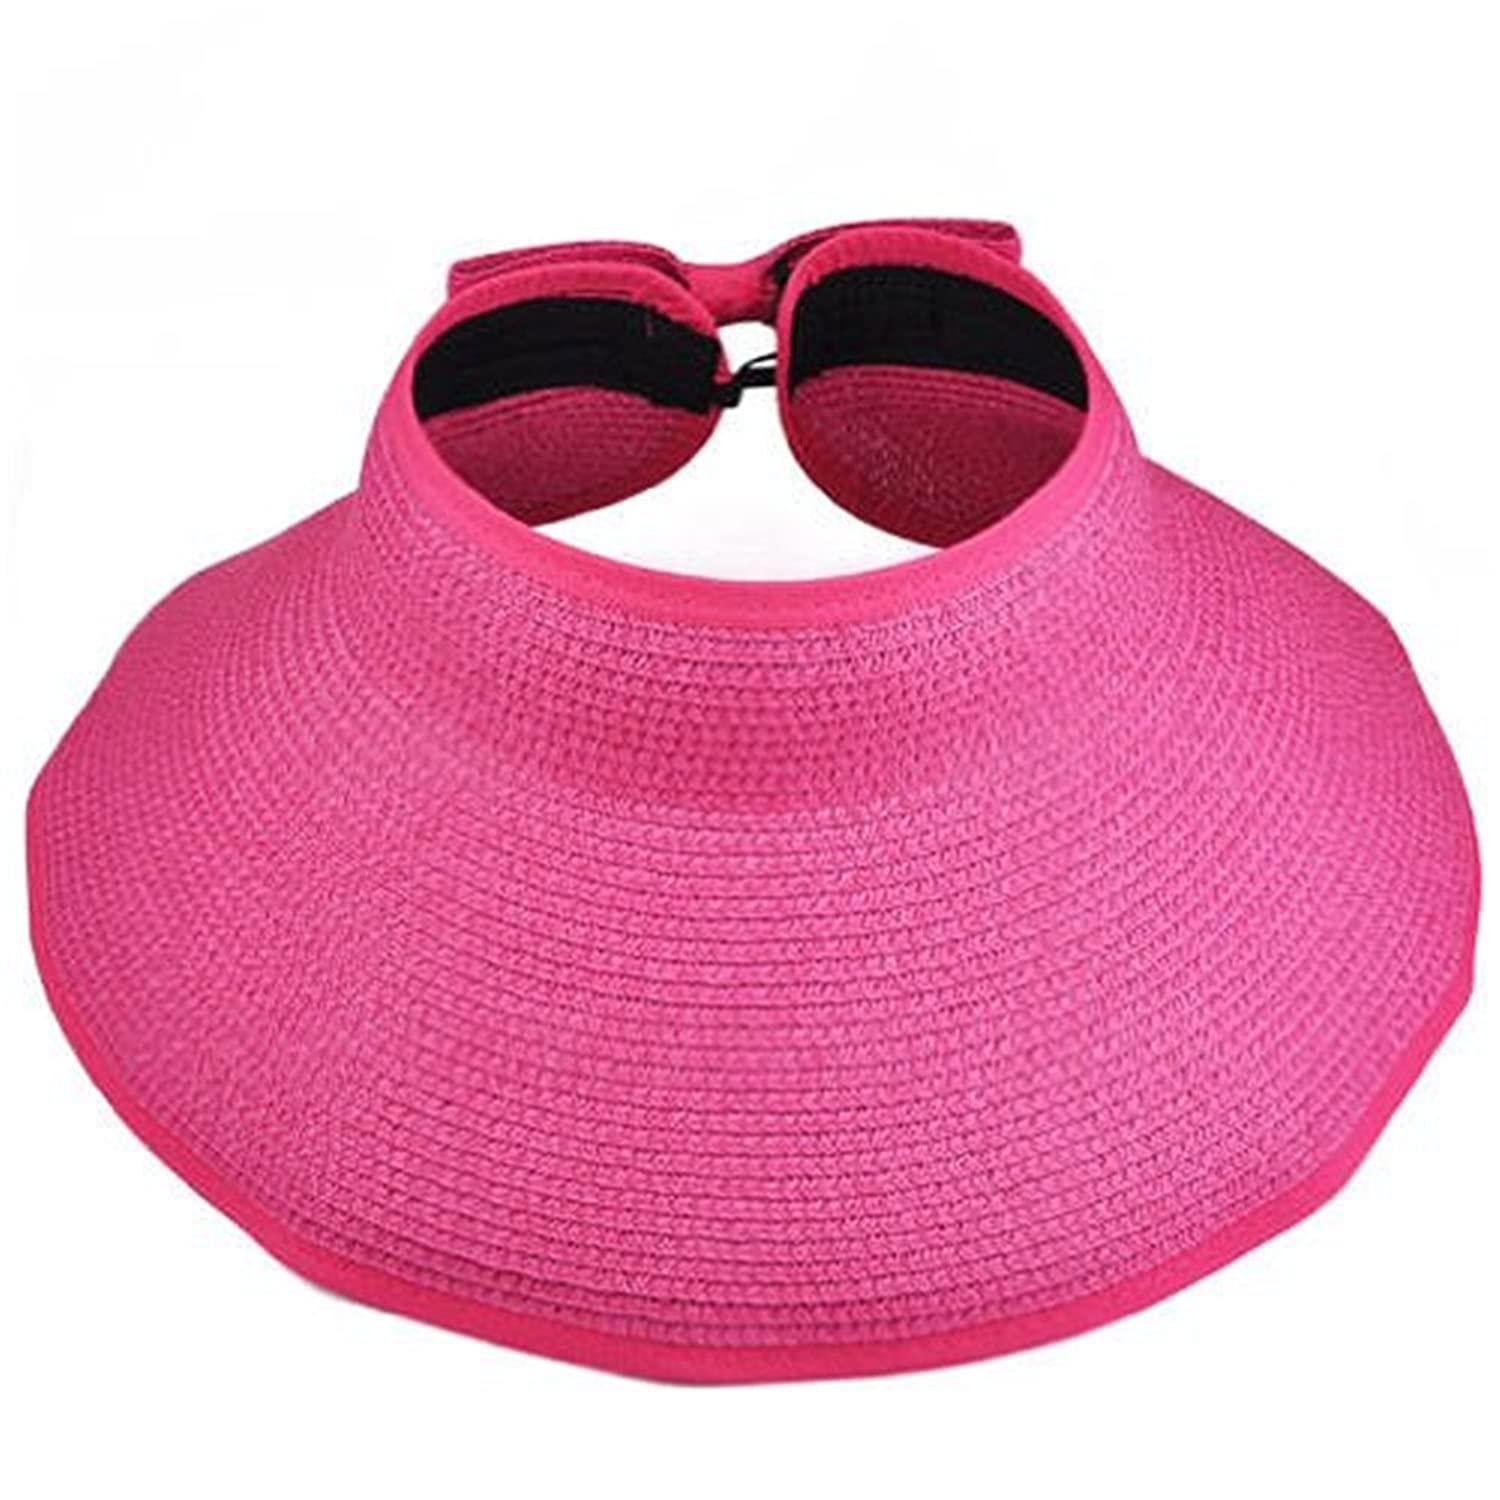 AStorePlus Women Sun Hat, Ladies UPF 50+ Summer Foldable Rool Up Wide Brim Sun Visor Beach Straw Hat